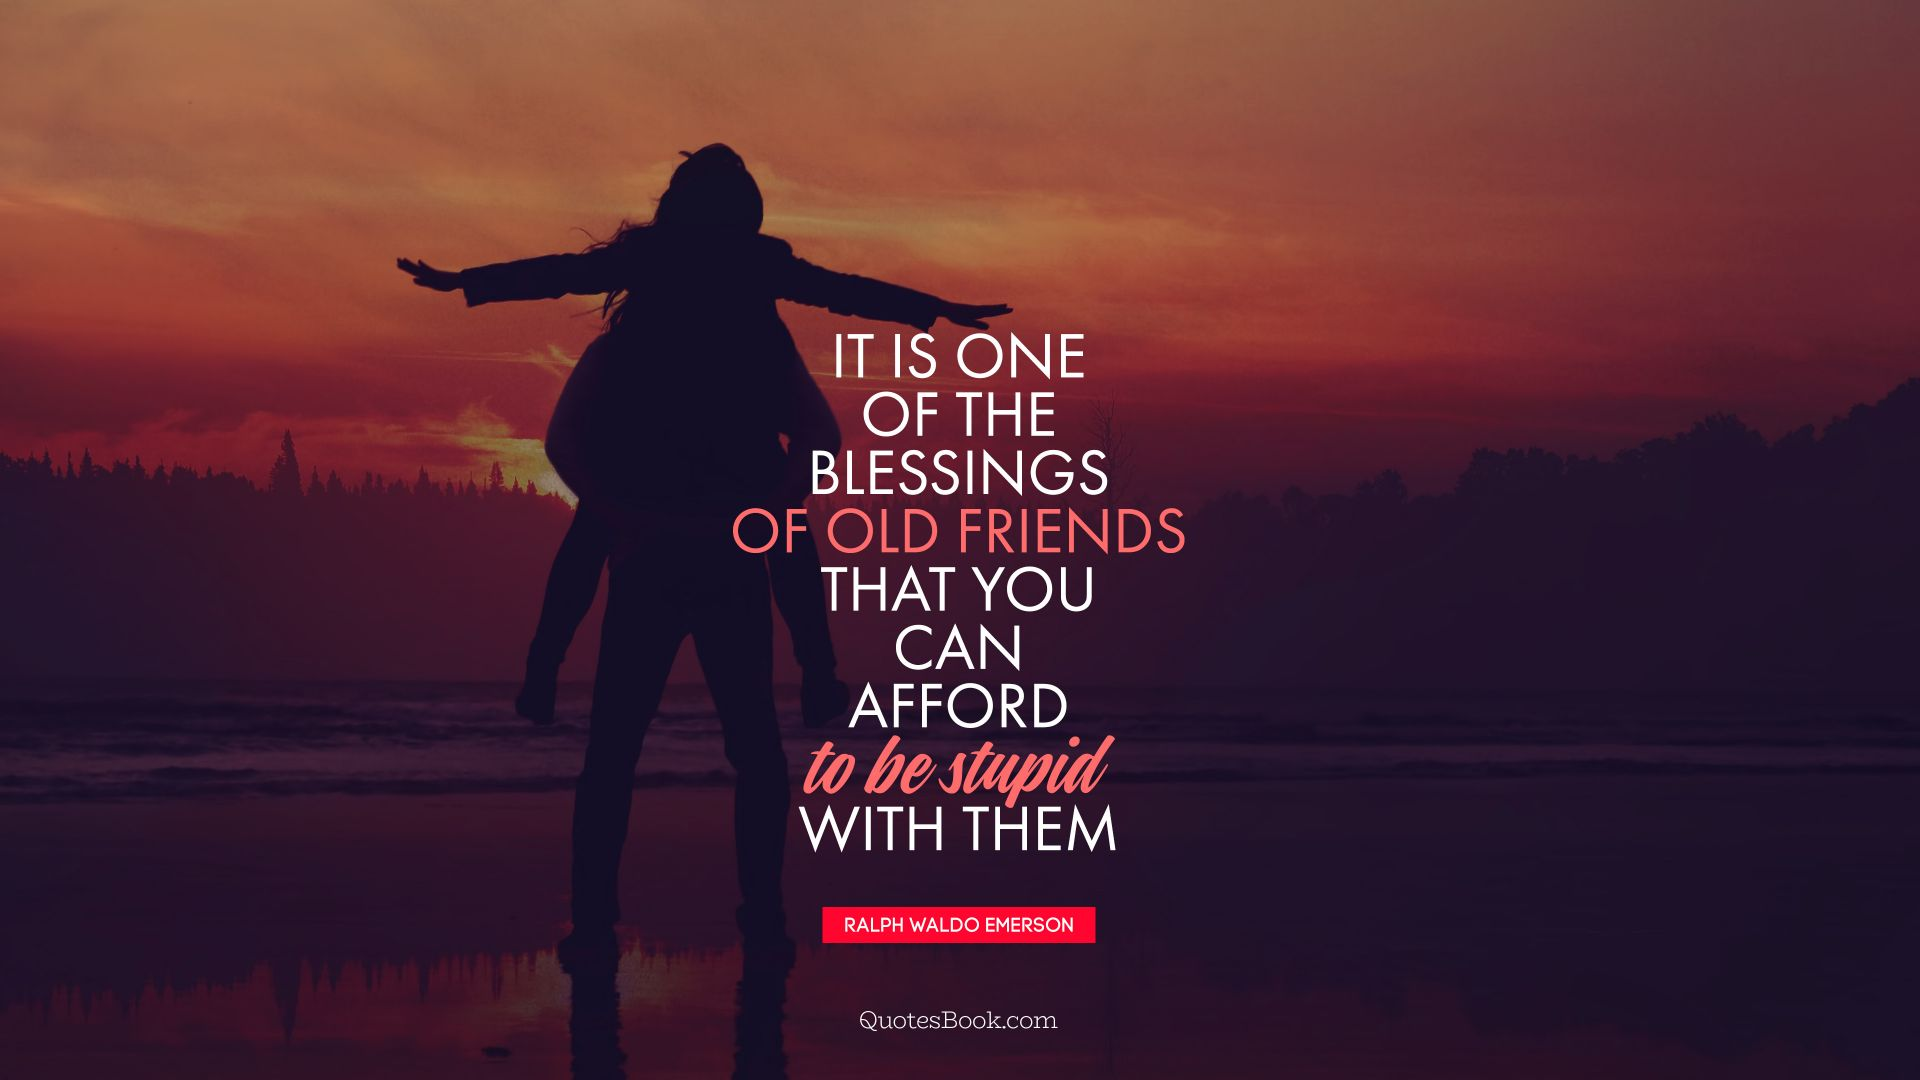 It is one of the blessings of old friends that you can afford to be stupid with them. - Quote by Ralph Waldo Emerson